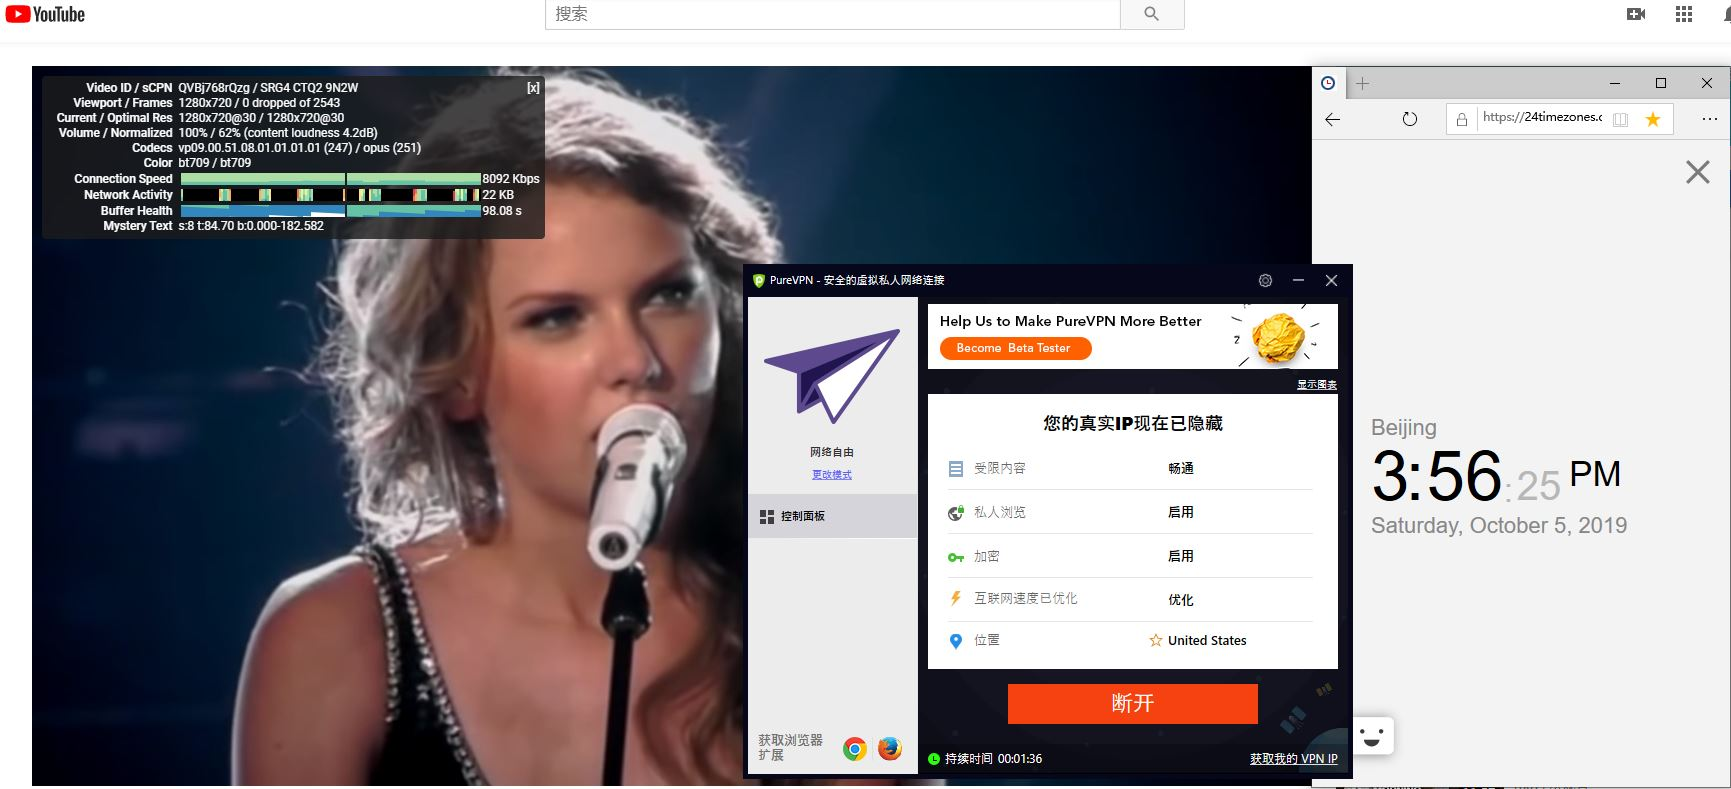 Windows PureVPN United States 中国VPN翻墙 科学上网 YouTube测试-20191005